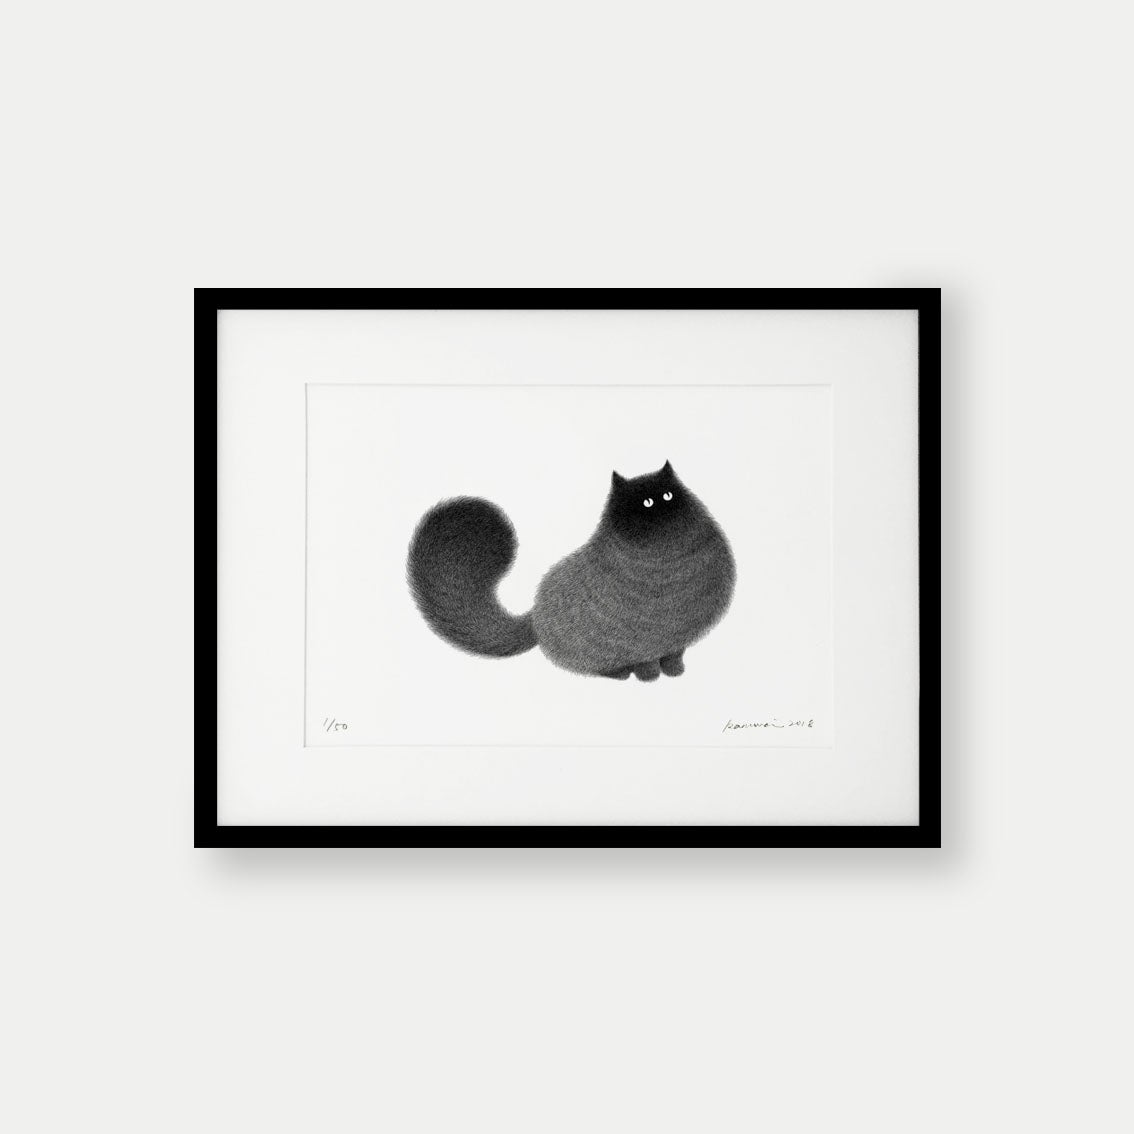 Image of Kitty No.31 – A3 Limited Edition Print